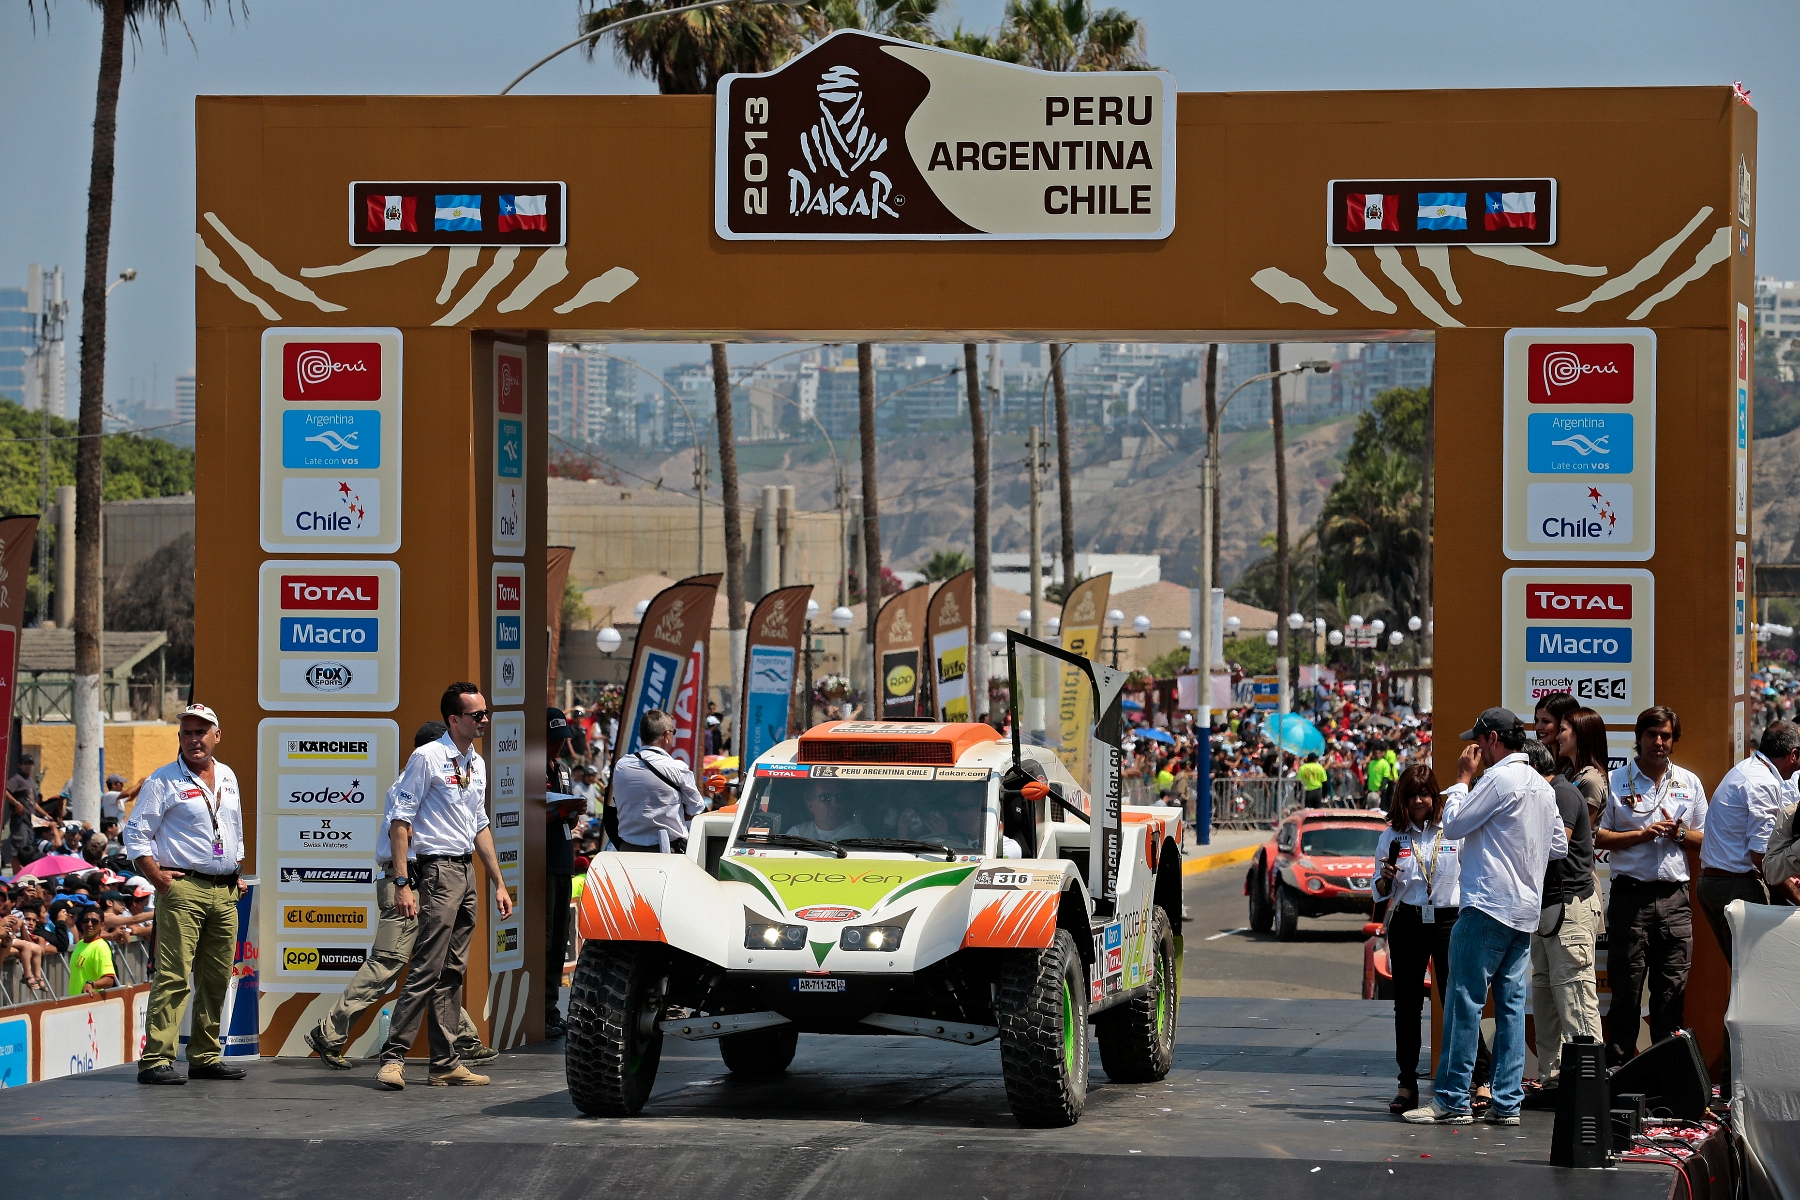 MOTORSPORT - DAKAR PERU CHILE ARGENTINA  2013 - STAGE 1 / ETAPE 1 - START / DEPART - LIMA  (PER) TO PISCO (PER) - 05/01/2013 - PHOTO : GREGORY LENORMAND / DPPI -  316 CHABOT RONAN ( FRANCE ) PILLOT GILLES ( FRANCE ) - SMG - TOYS MOTORS - SMG - ACTION